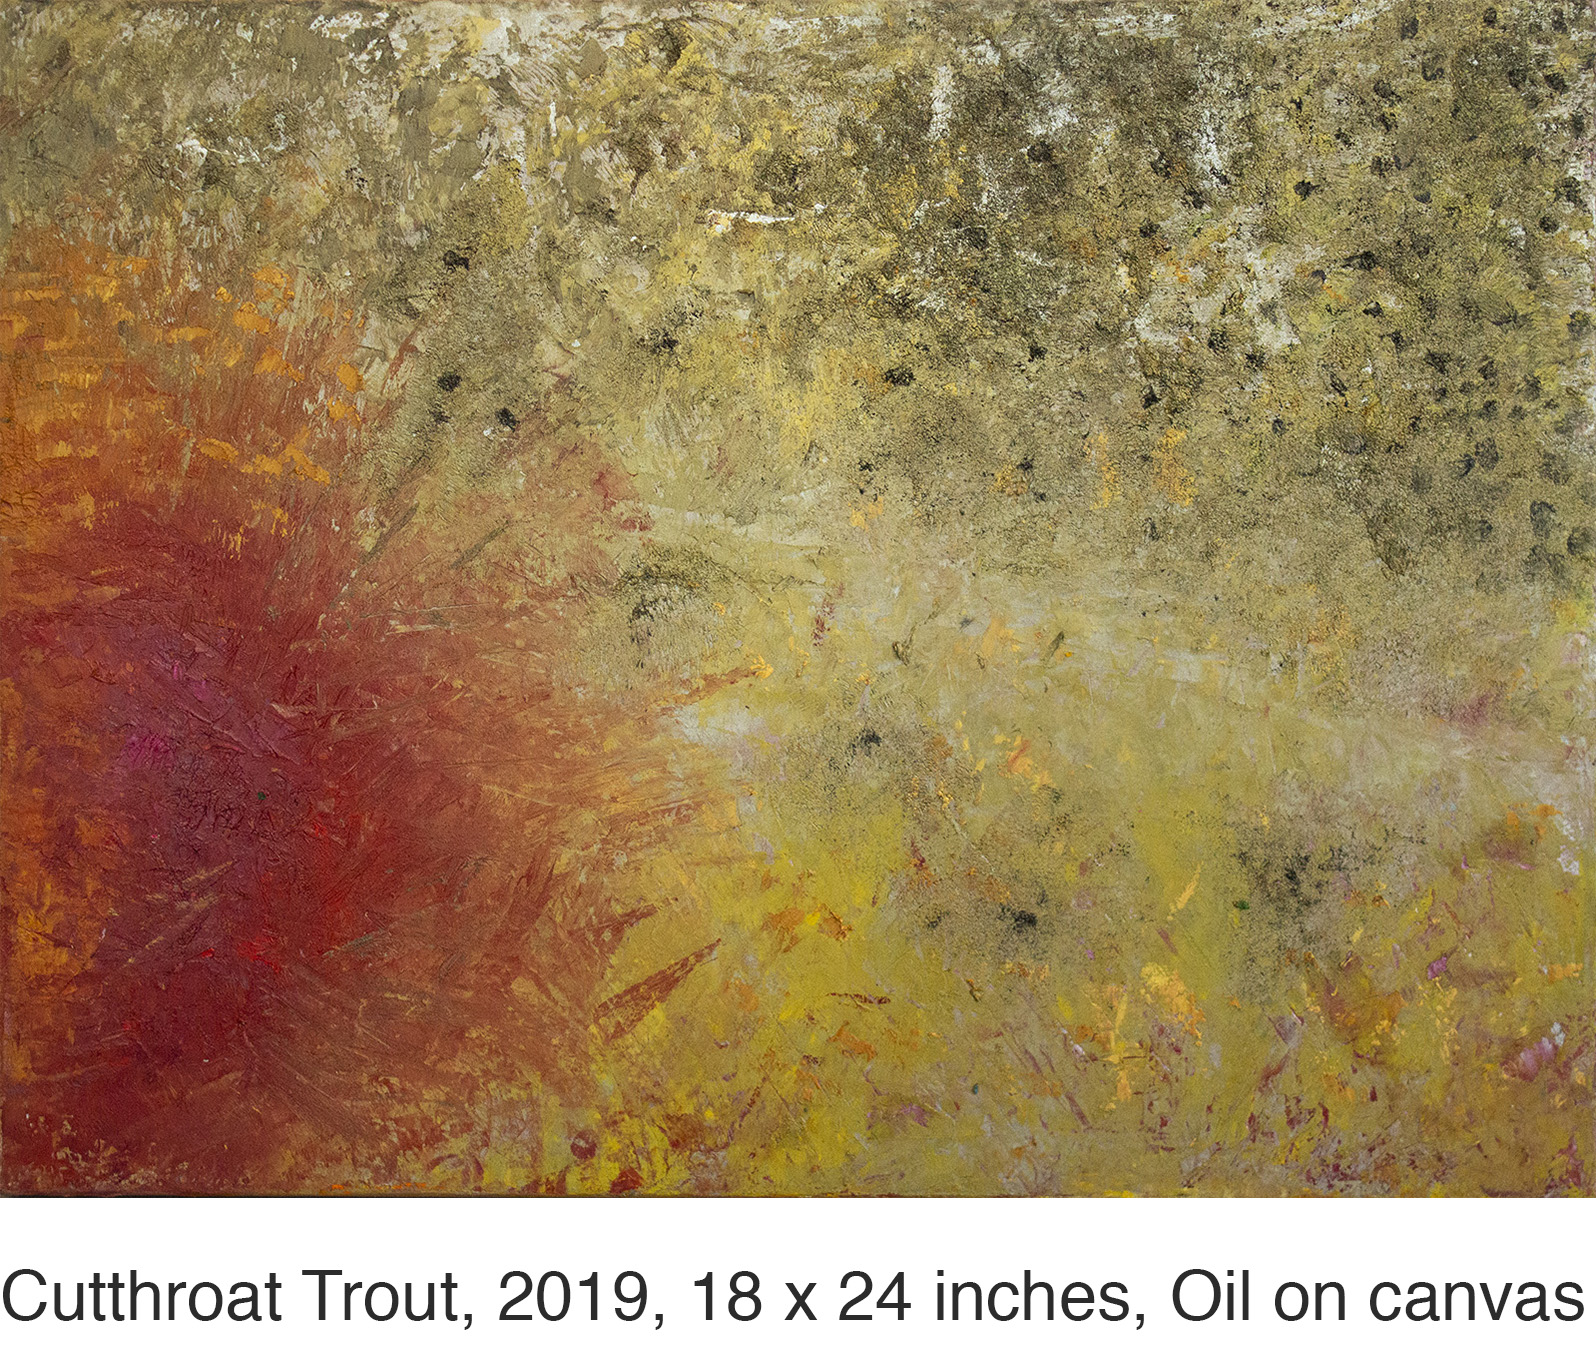 18x24_R_CutthroatTrout_2019_Krutick_Oil web caption.jpg